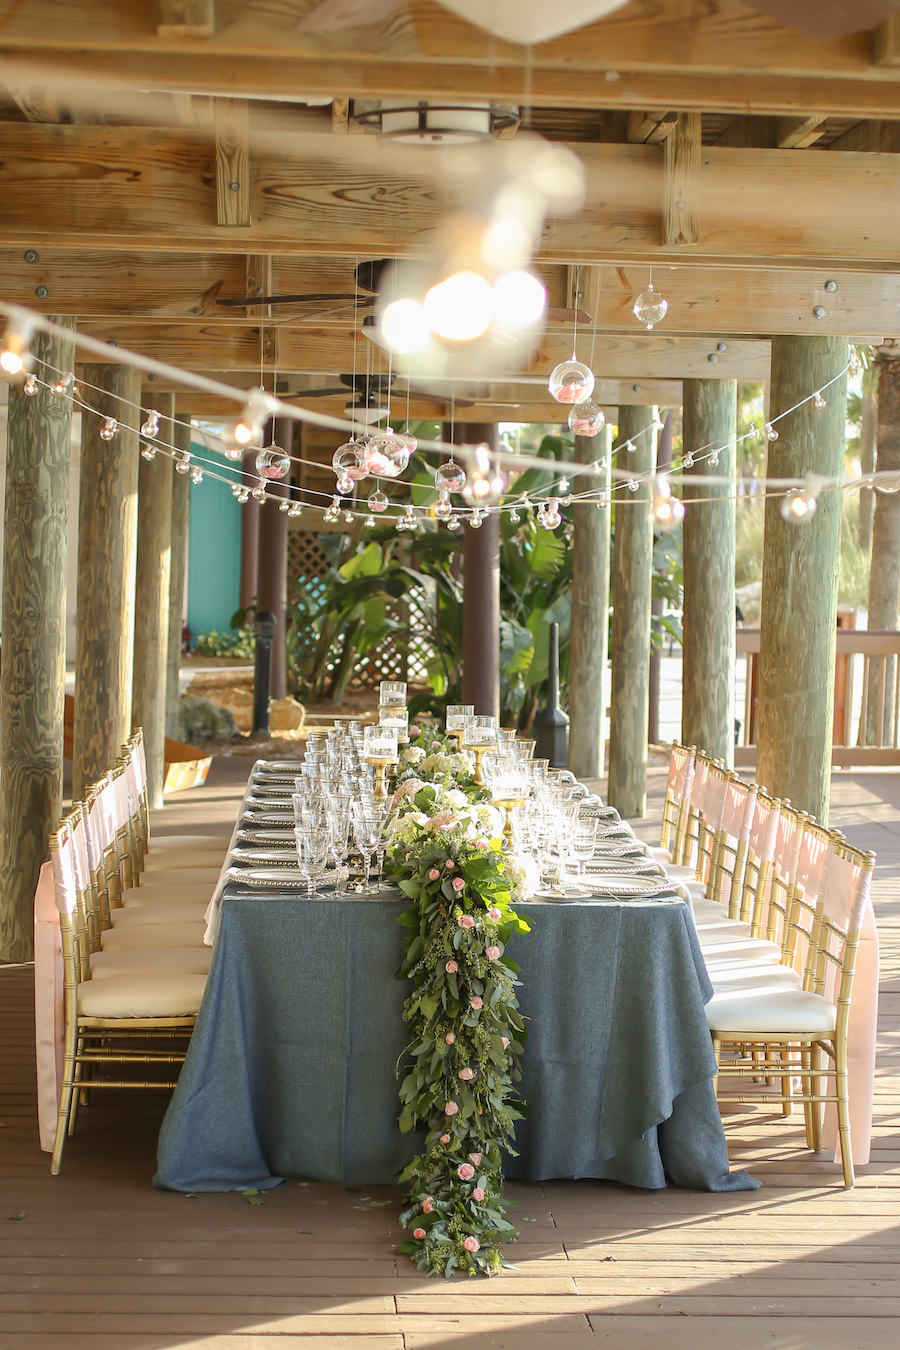 Rustic, Bohemian Beach Wedding Reception Decor with Blush, Navy and Gold Centerpieces and Gold Chiavari Chairs with Blush Satin Chair Sash at Hilton Clearwater Beach   Flowers by Iza's Flowers   Linens by Over The Top Linens   Chairs by Signature Event Rentals